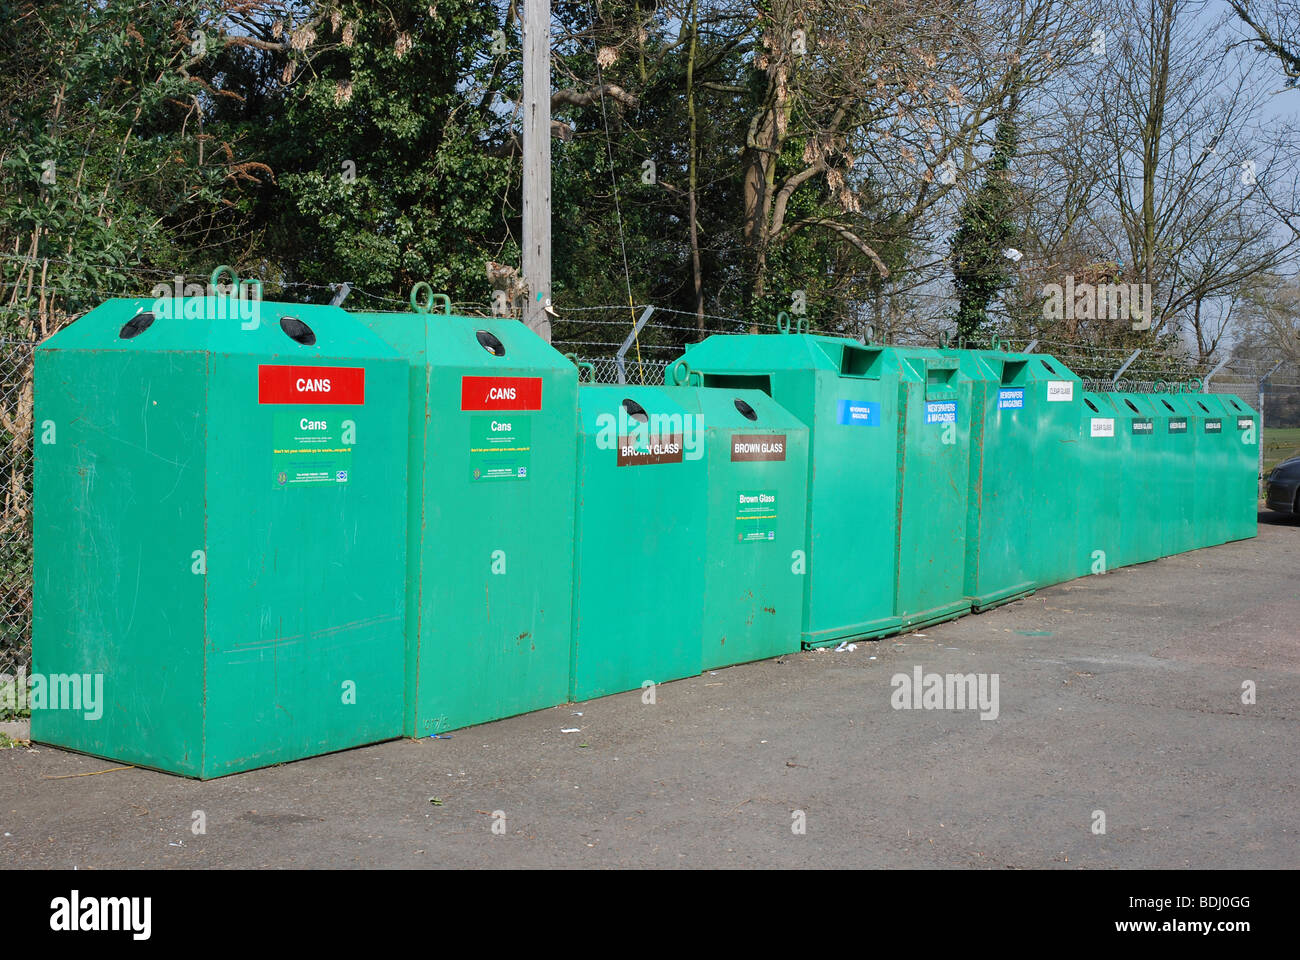 Bottle Banks at a  Recycling Centre, Northamptonshire, England. - Stock Image